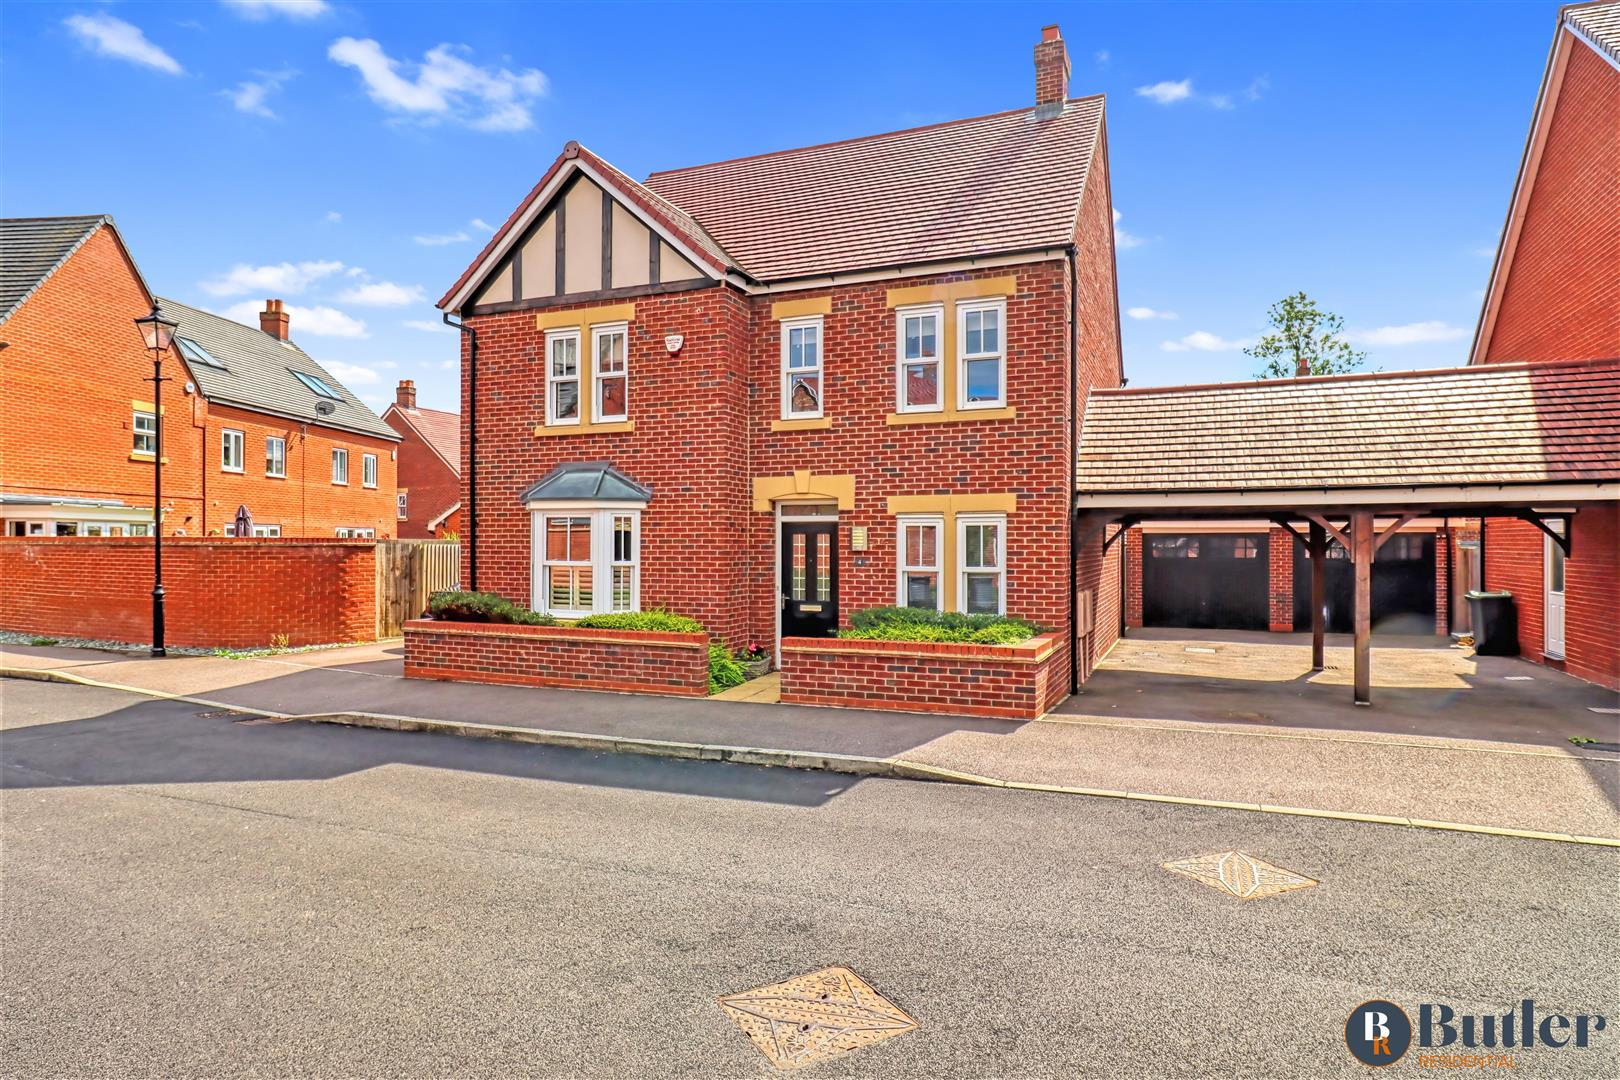 4 bed detached house for sale in Clover Way, Bedford, MK42